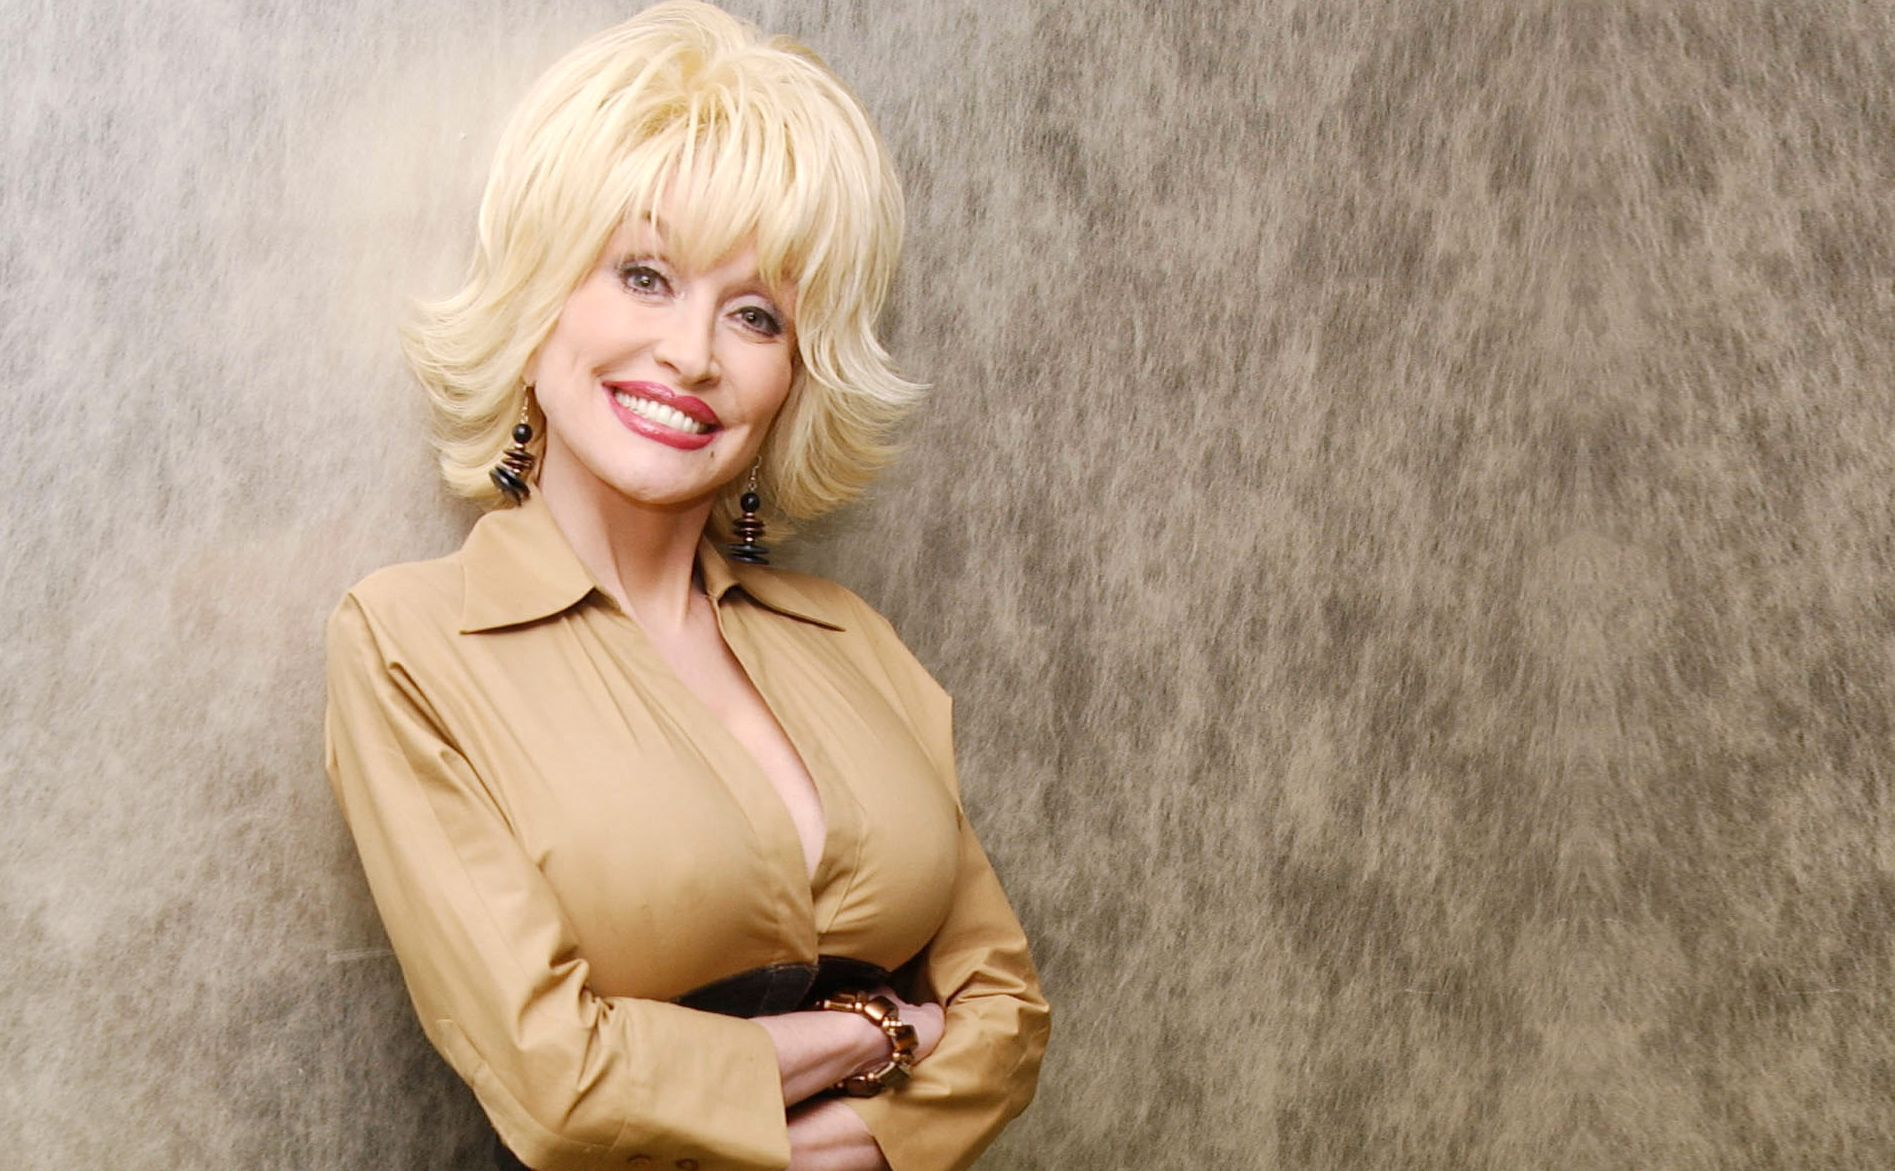 Dolly Parton: Things Most Fans Didn't Know About Dolly Parton